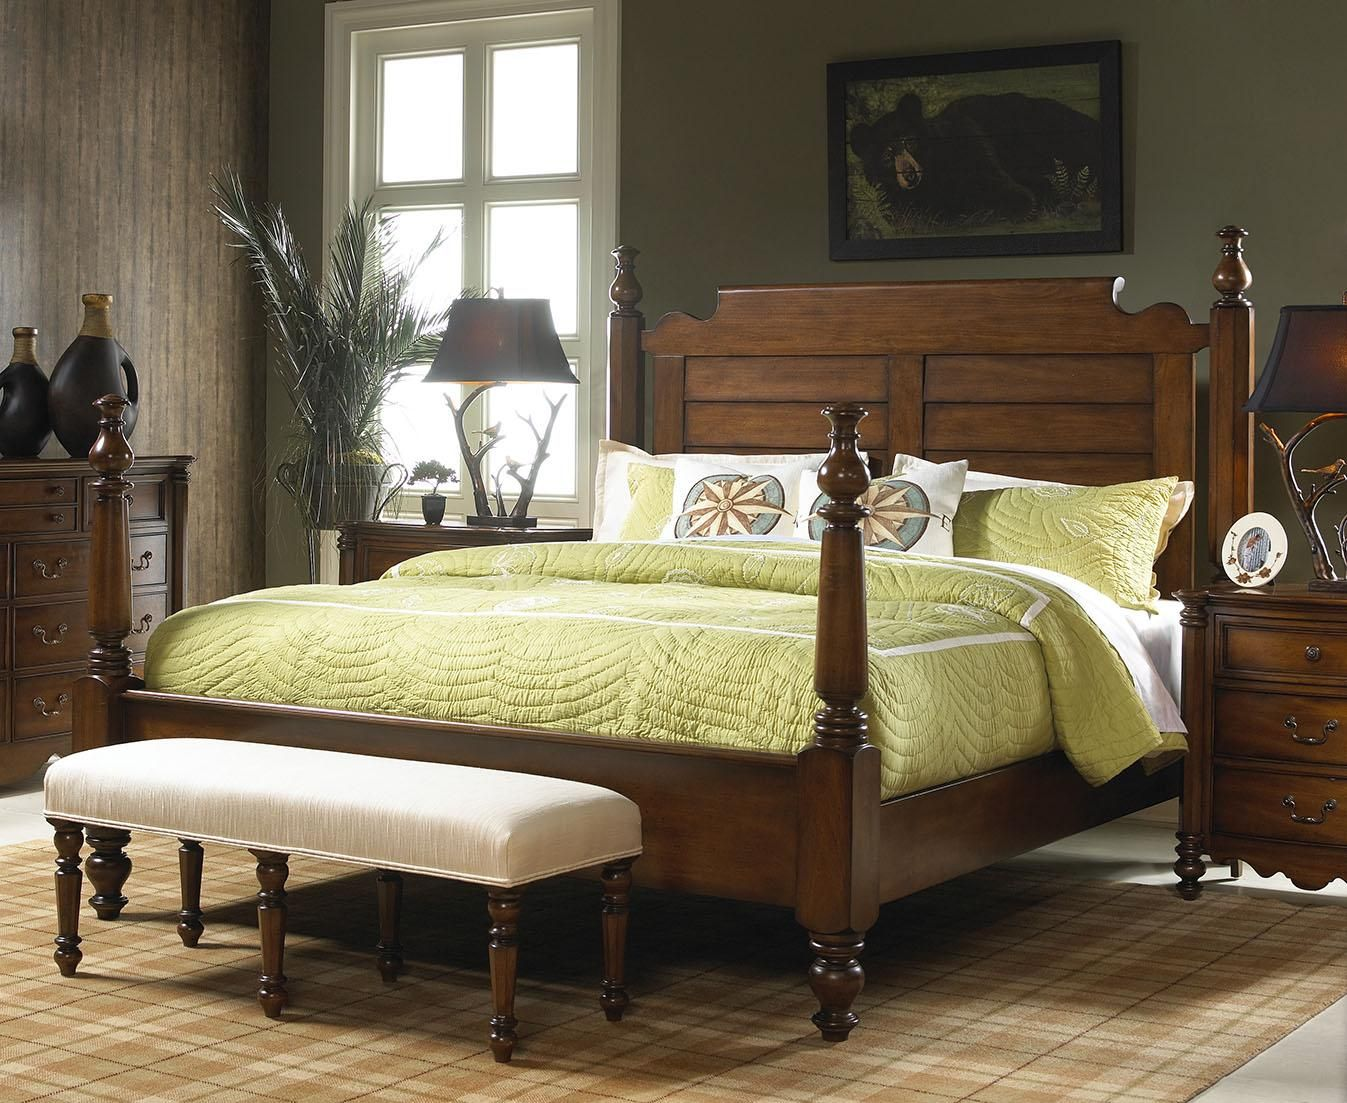 Shop For The Fine Furniture Design Summer Home King Post Bed At SummerHome  Furniture   Your Shallotte, Southport, St.